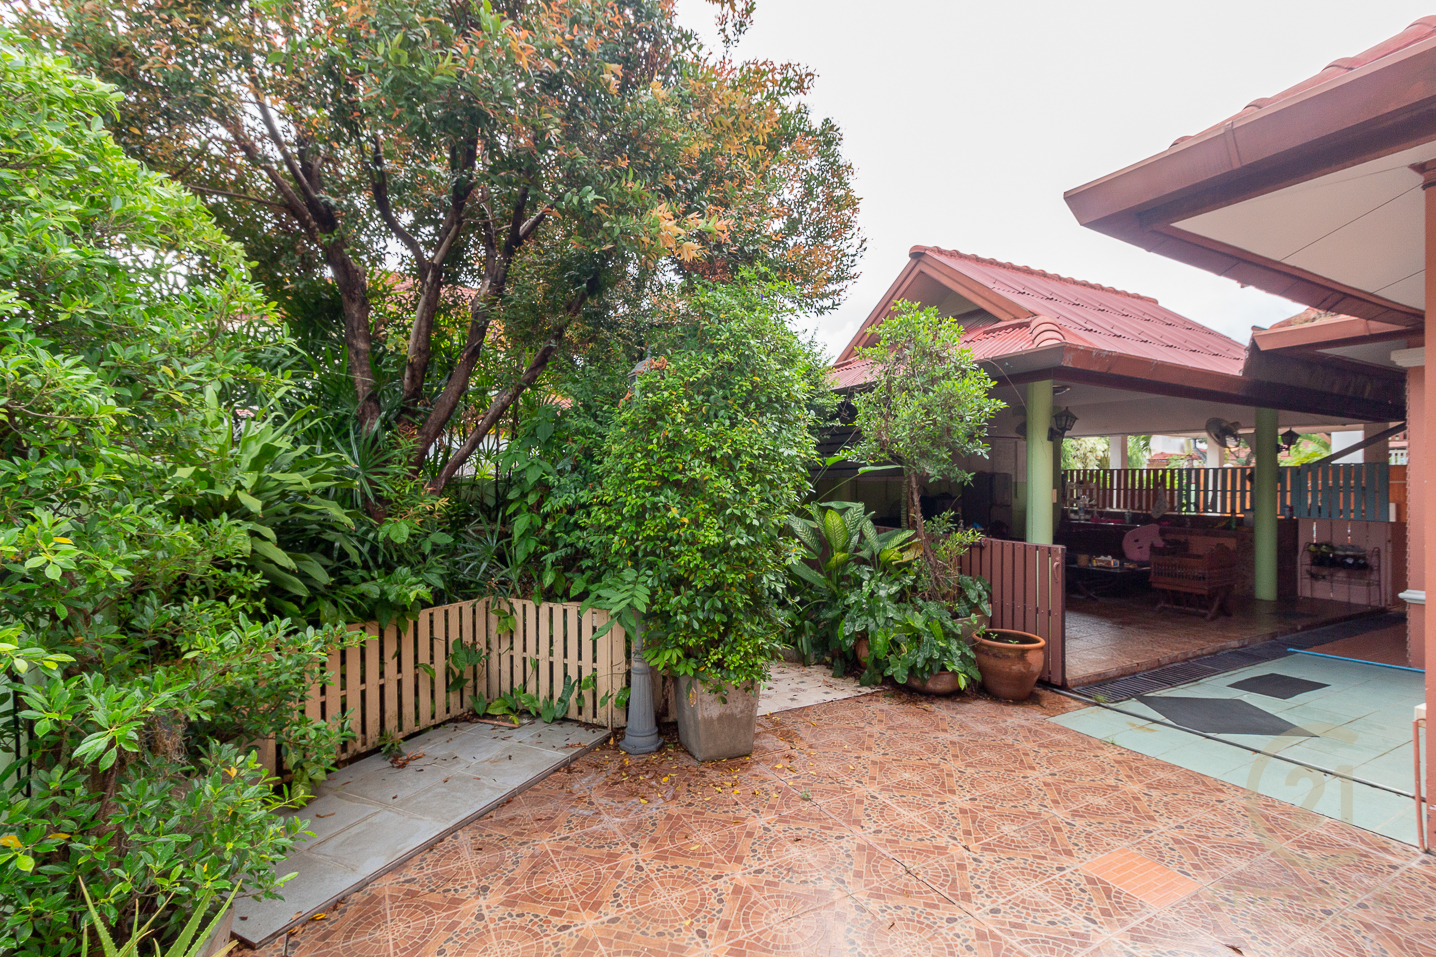 House for SALE in a quiet area at the corner plot